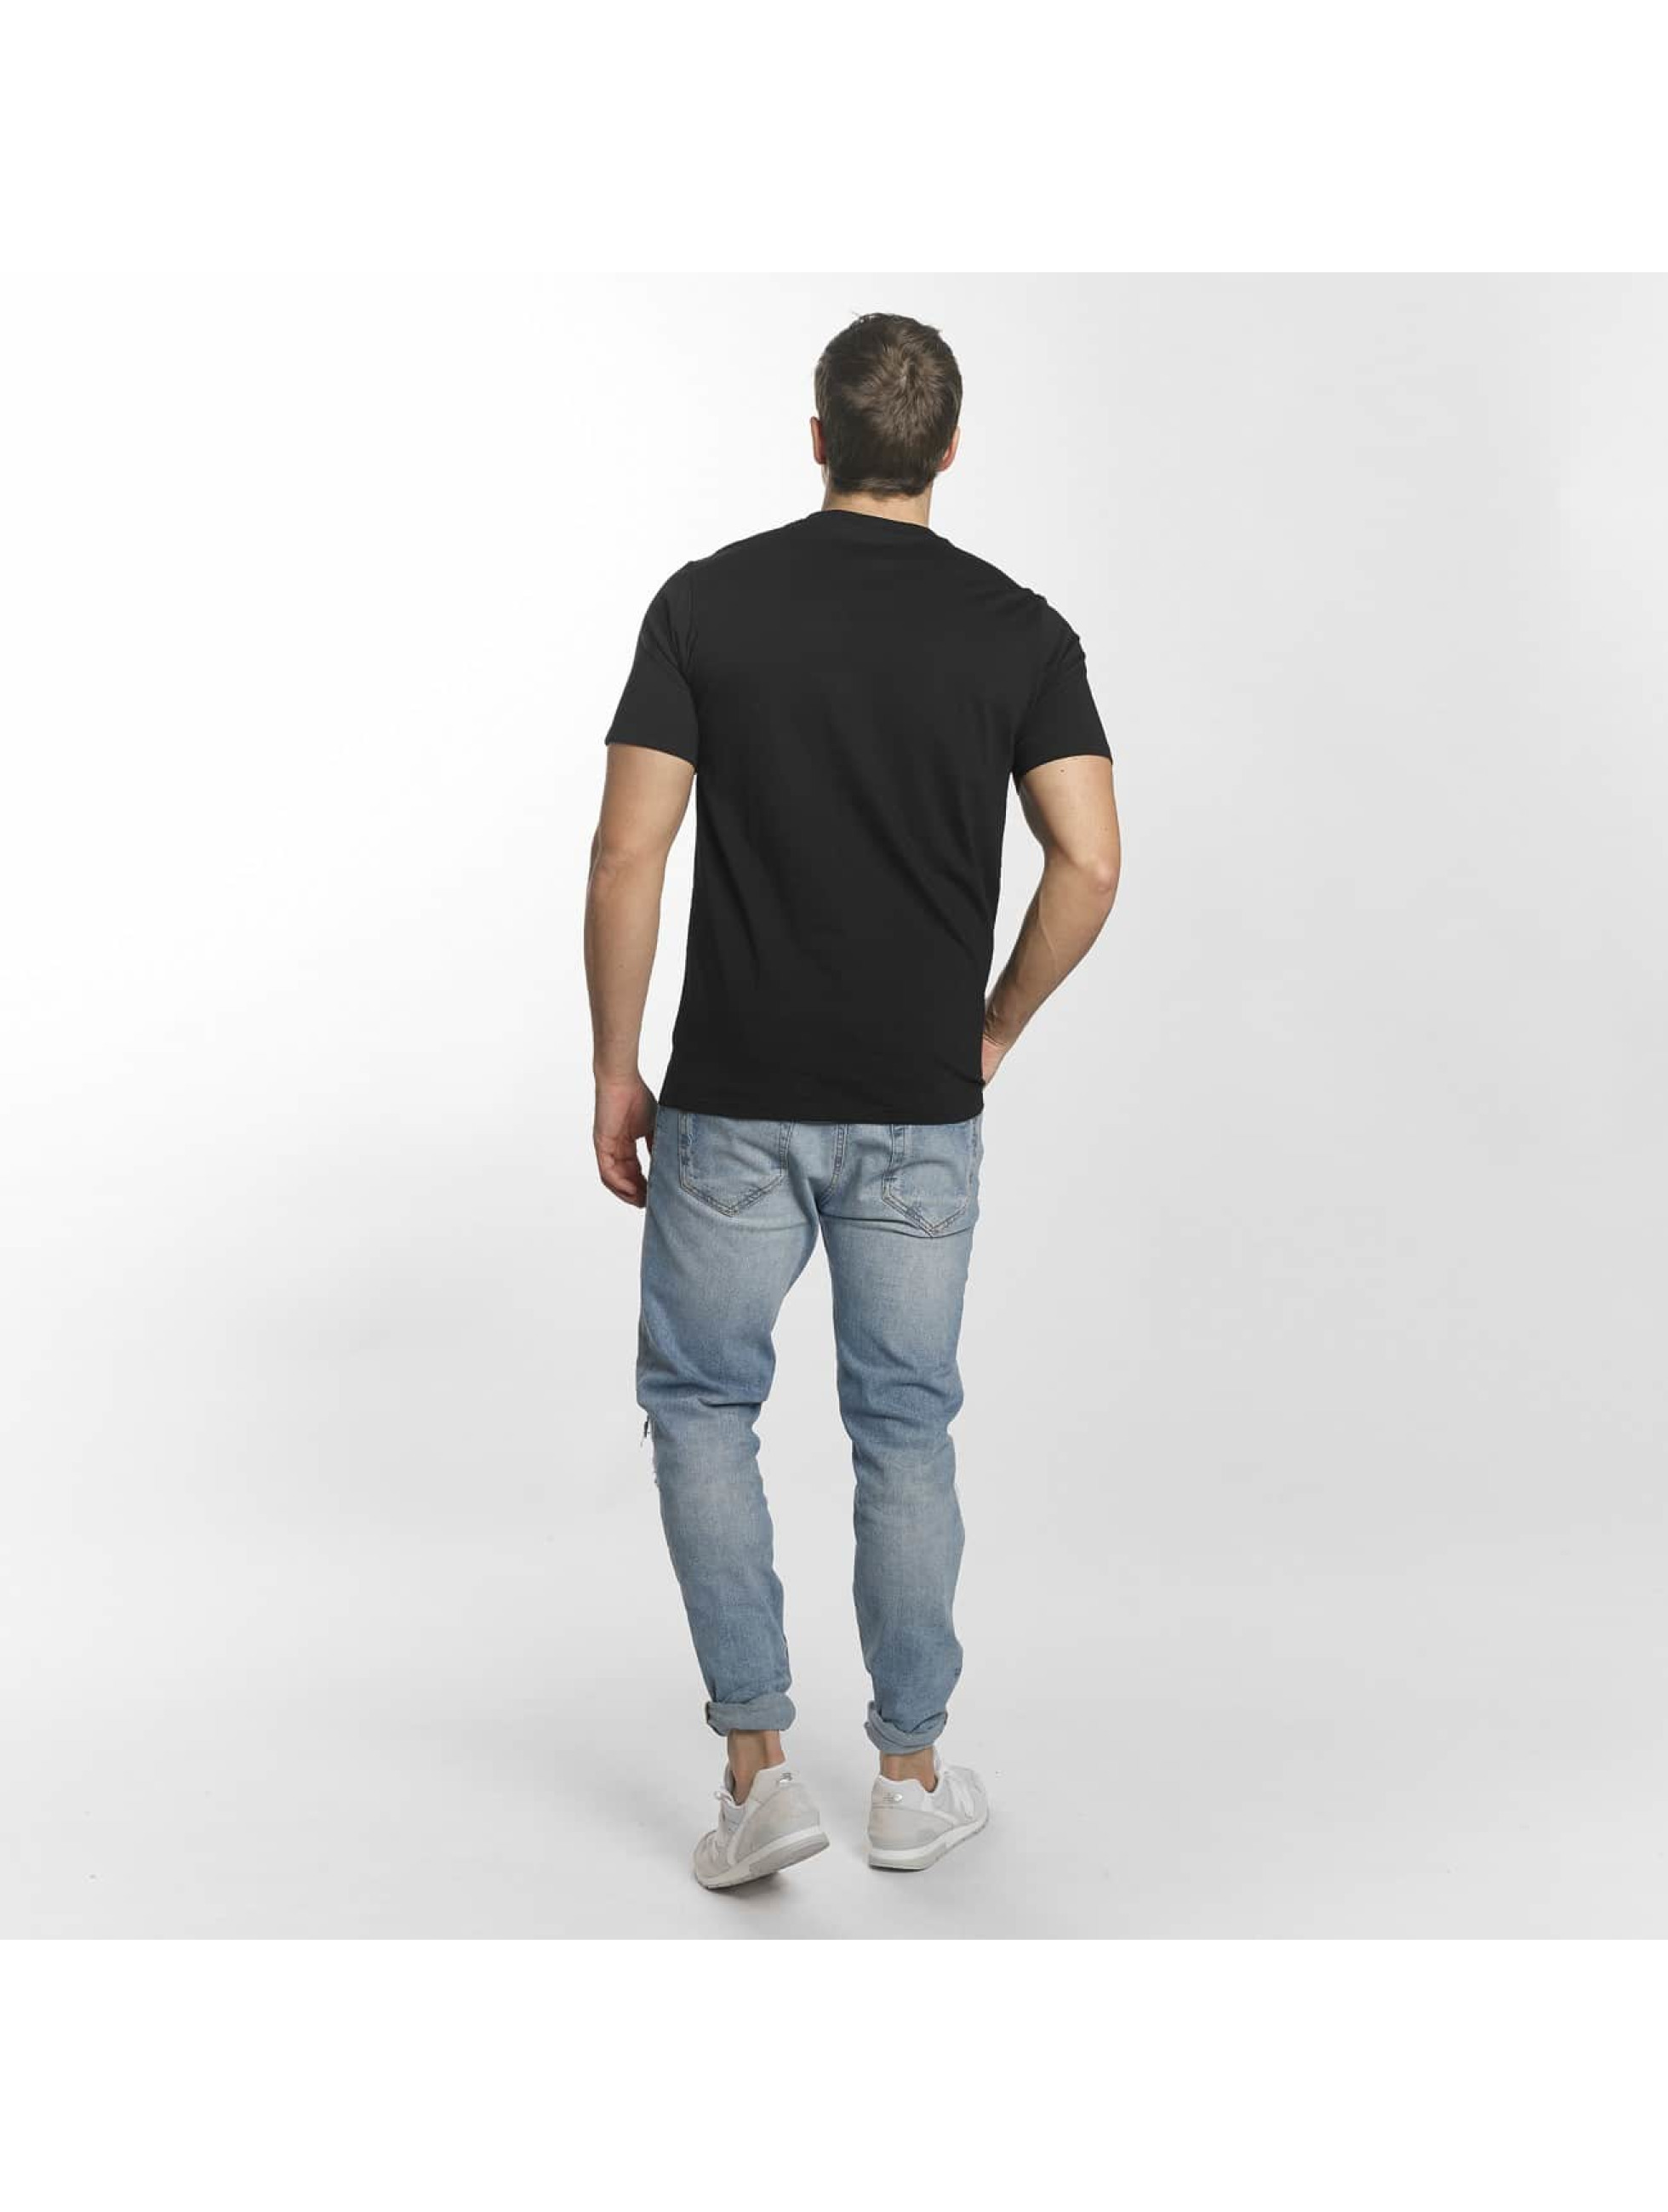 New Balance T-Shirt MT73587 Essentials black